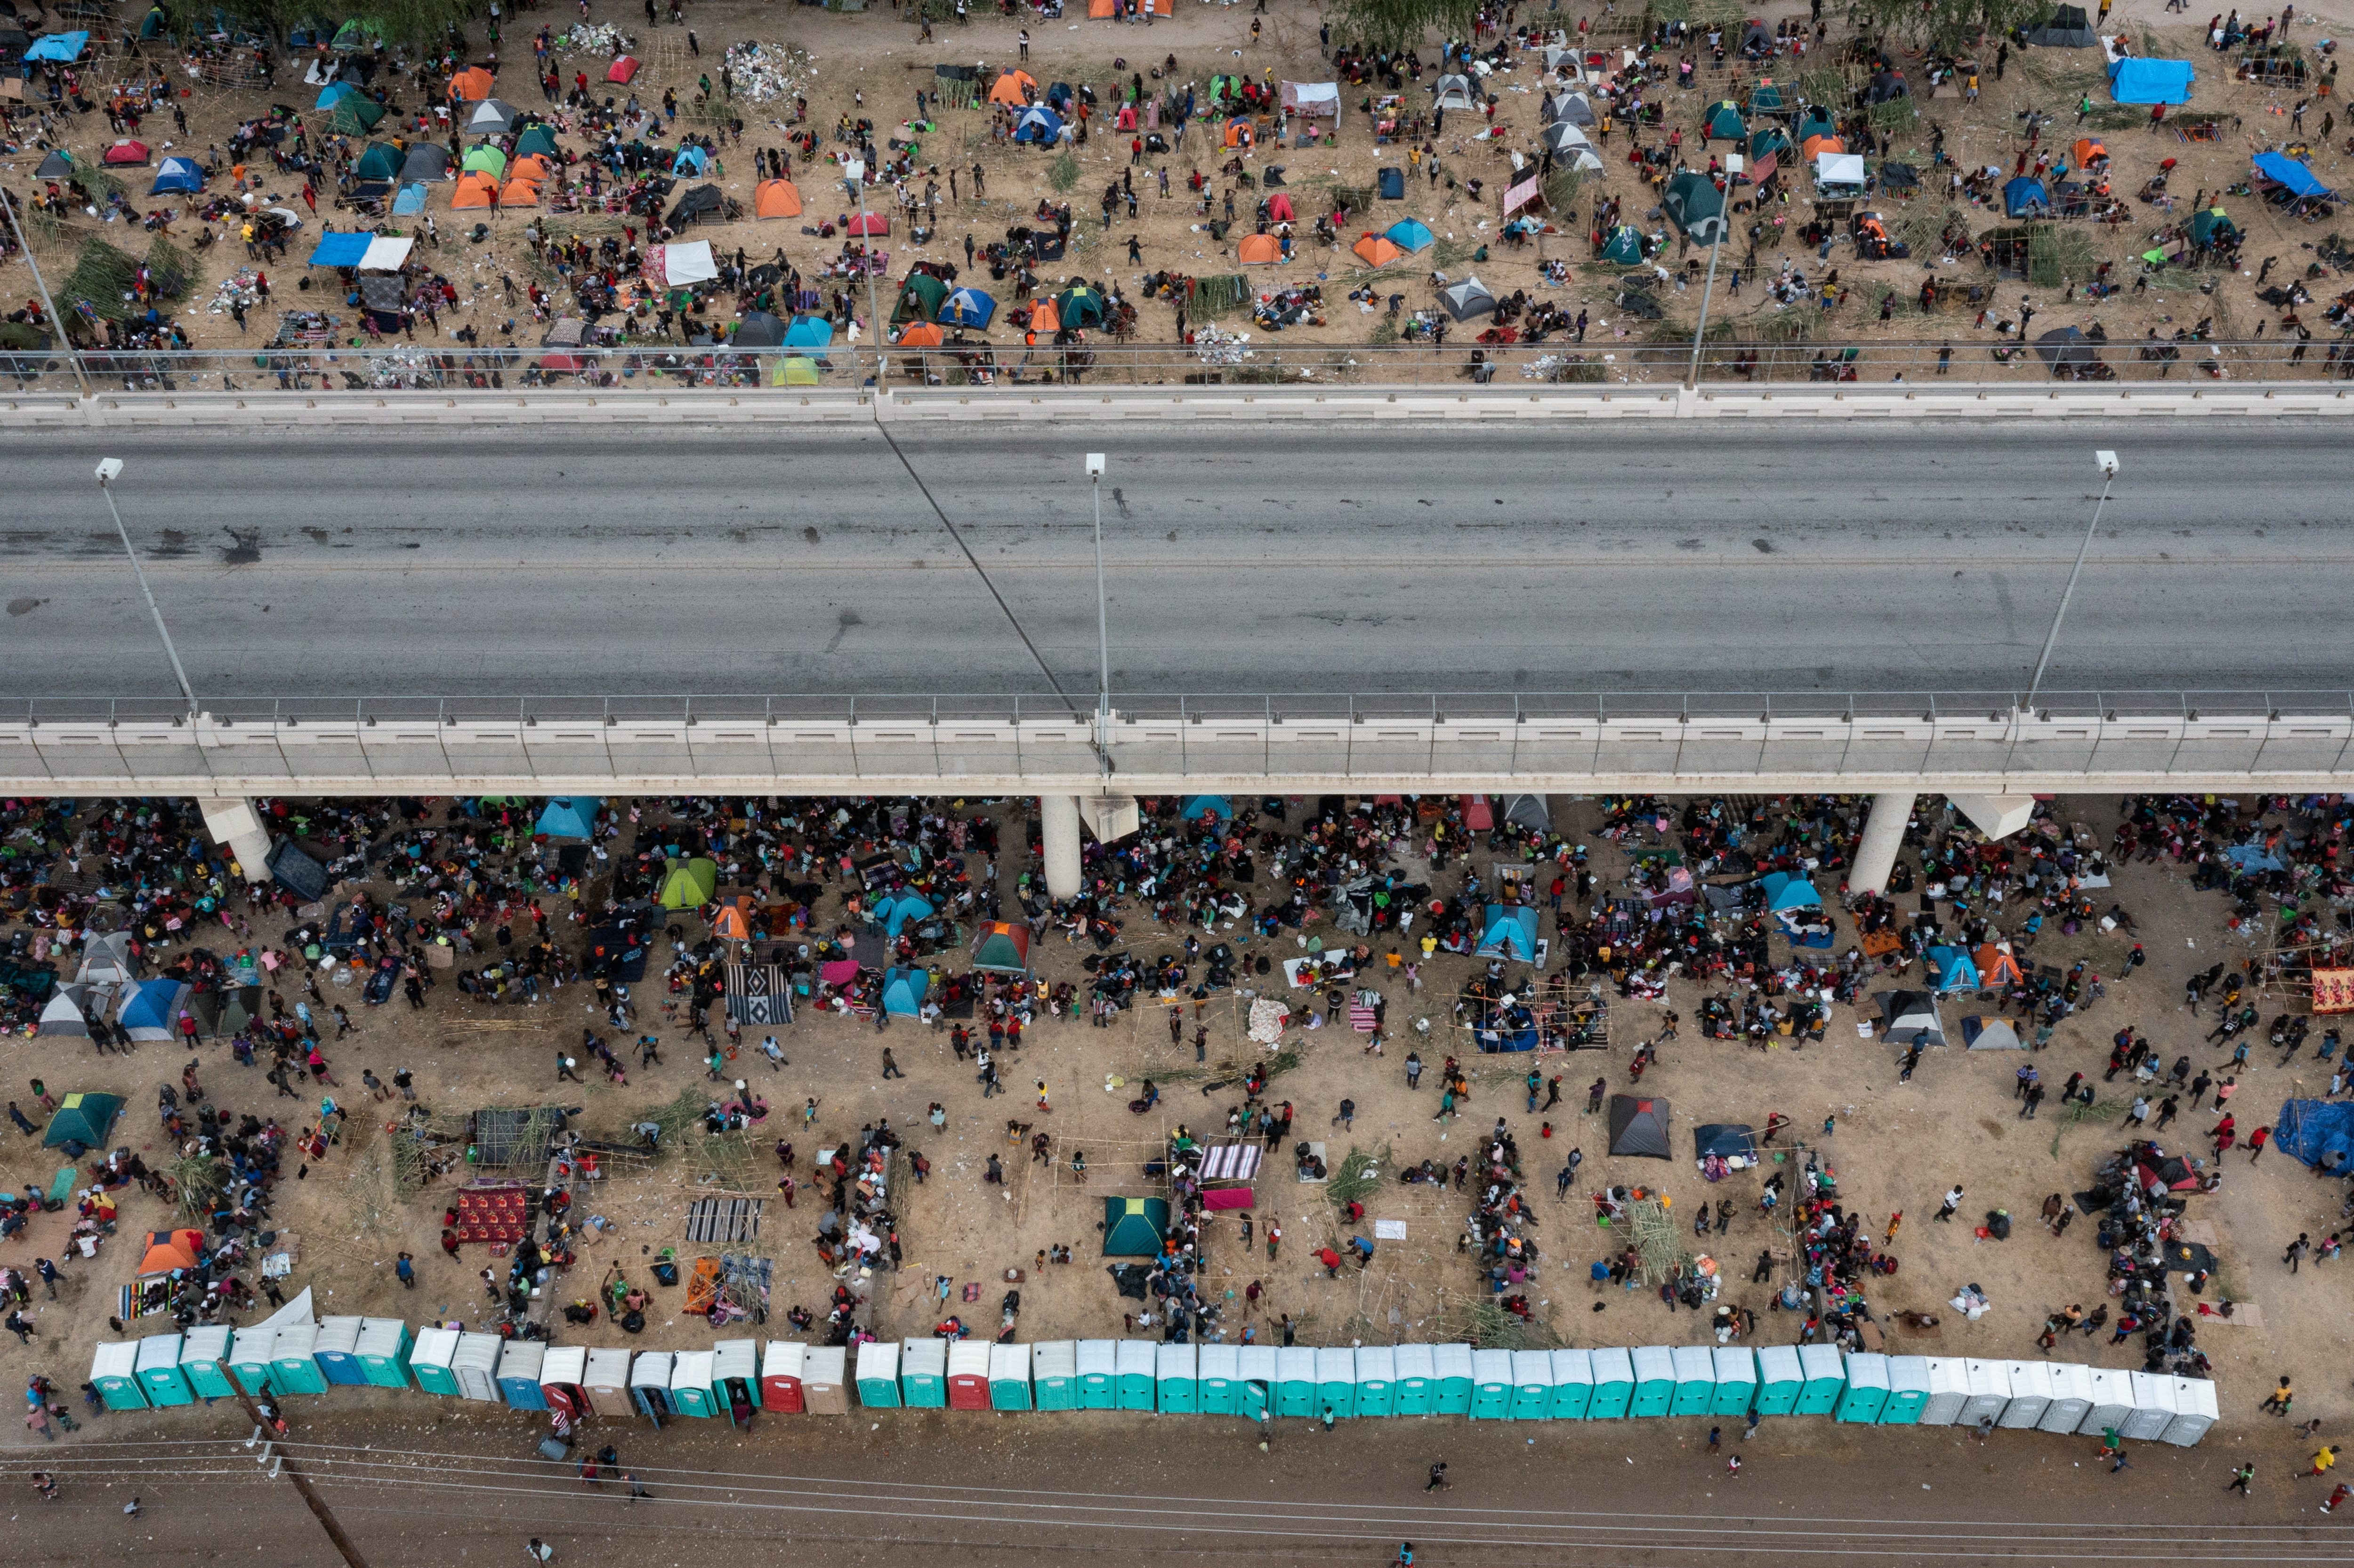 Some thousands of migrants take shelter as they await to be processed near the Del Rio International Bridge after crossing the Rio Grande river into the U.S. from Ciudad Acuna in Del Rio, Texas, U.S. September 18, 2021. Picture taken with a drone. REUTERS/Adrees Latif